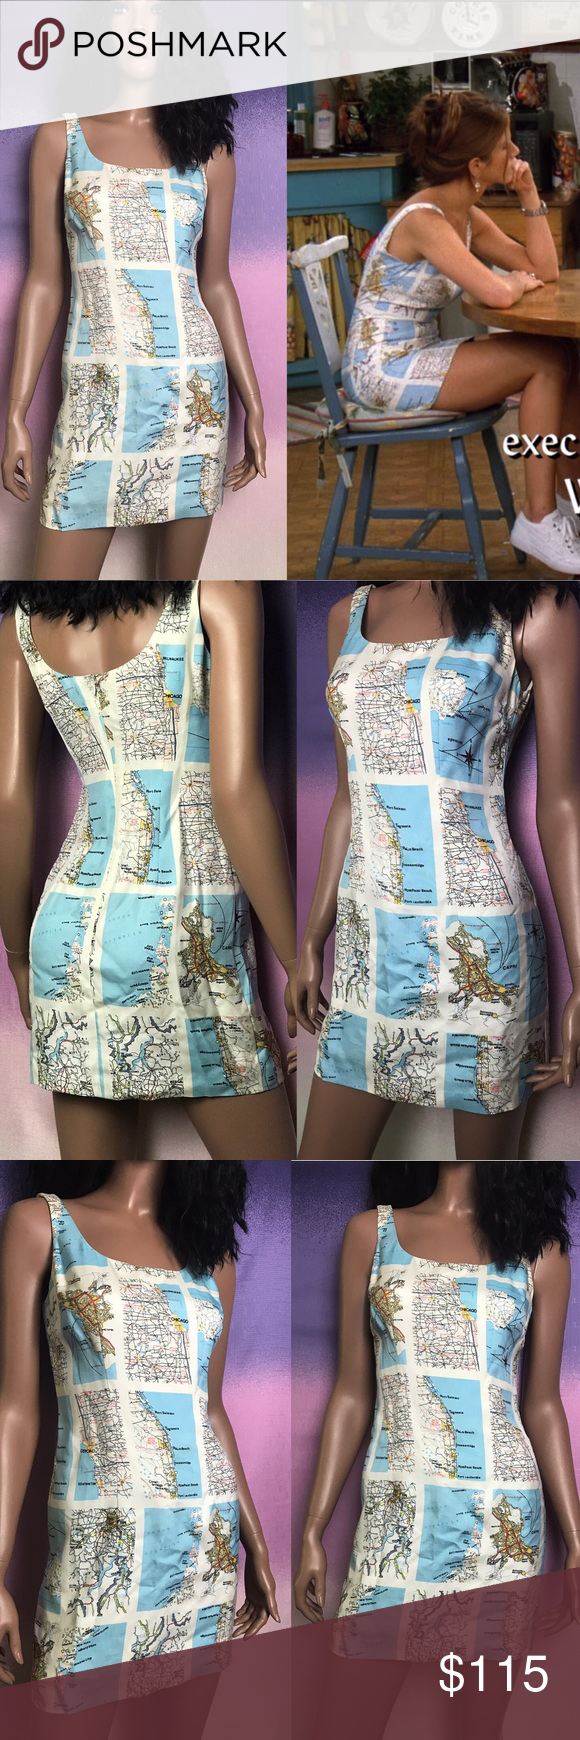 Rachel Green 90s Vintage Map Dress From Friends Fashion 90s Fashion Outfits Map Dress [ 1740 x 580 Pixel ]